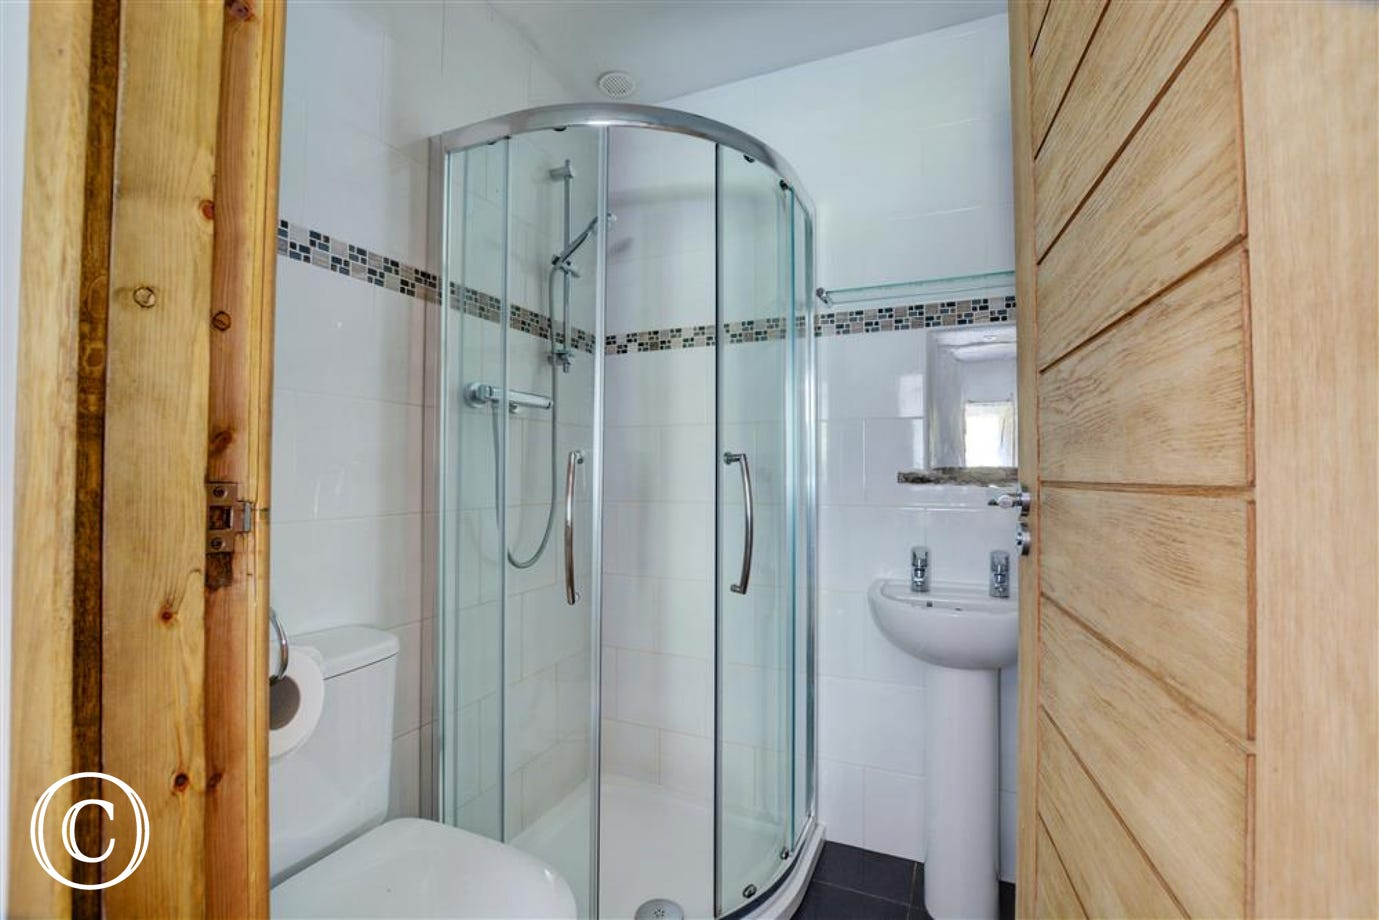 Shower room off the games room